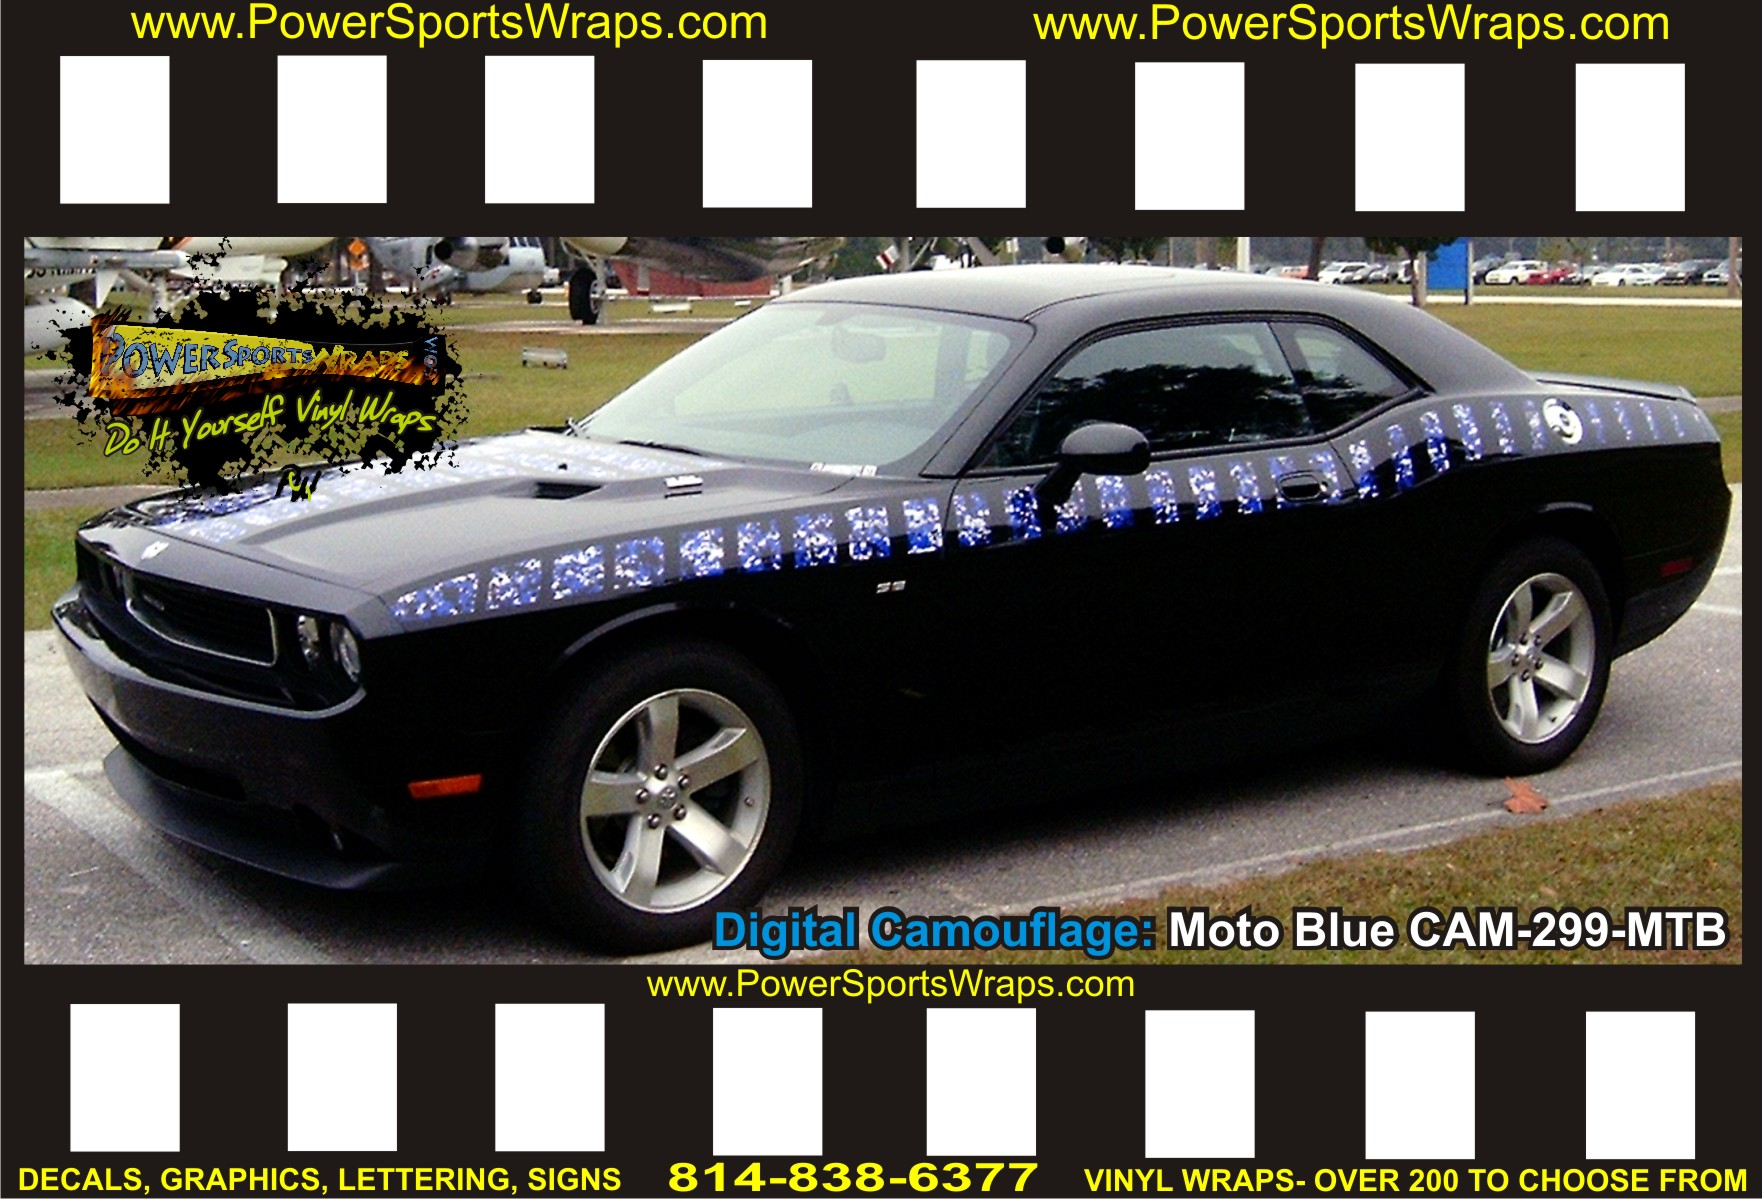 DODGE CHALLENGER CUSTOM DIGITAL CAMO GRAPHICS MOTO BLUE - Camo custom vinyl decals for trucks